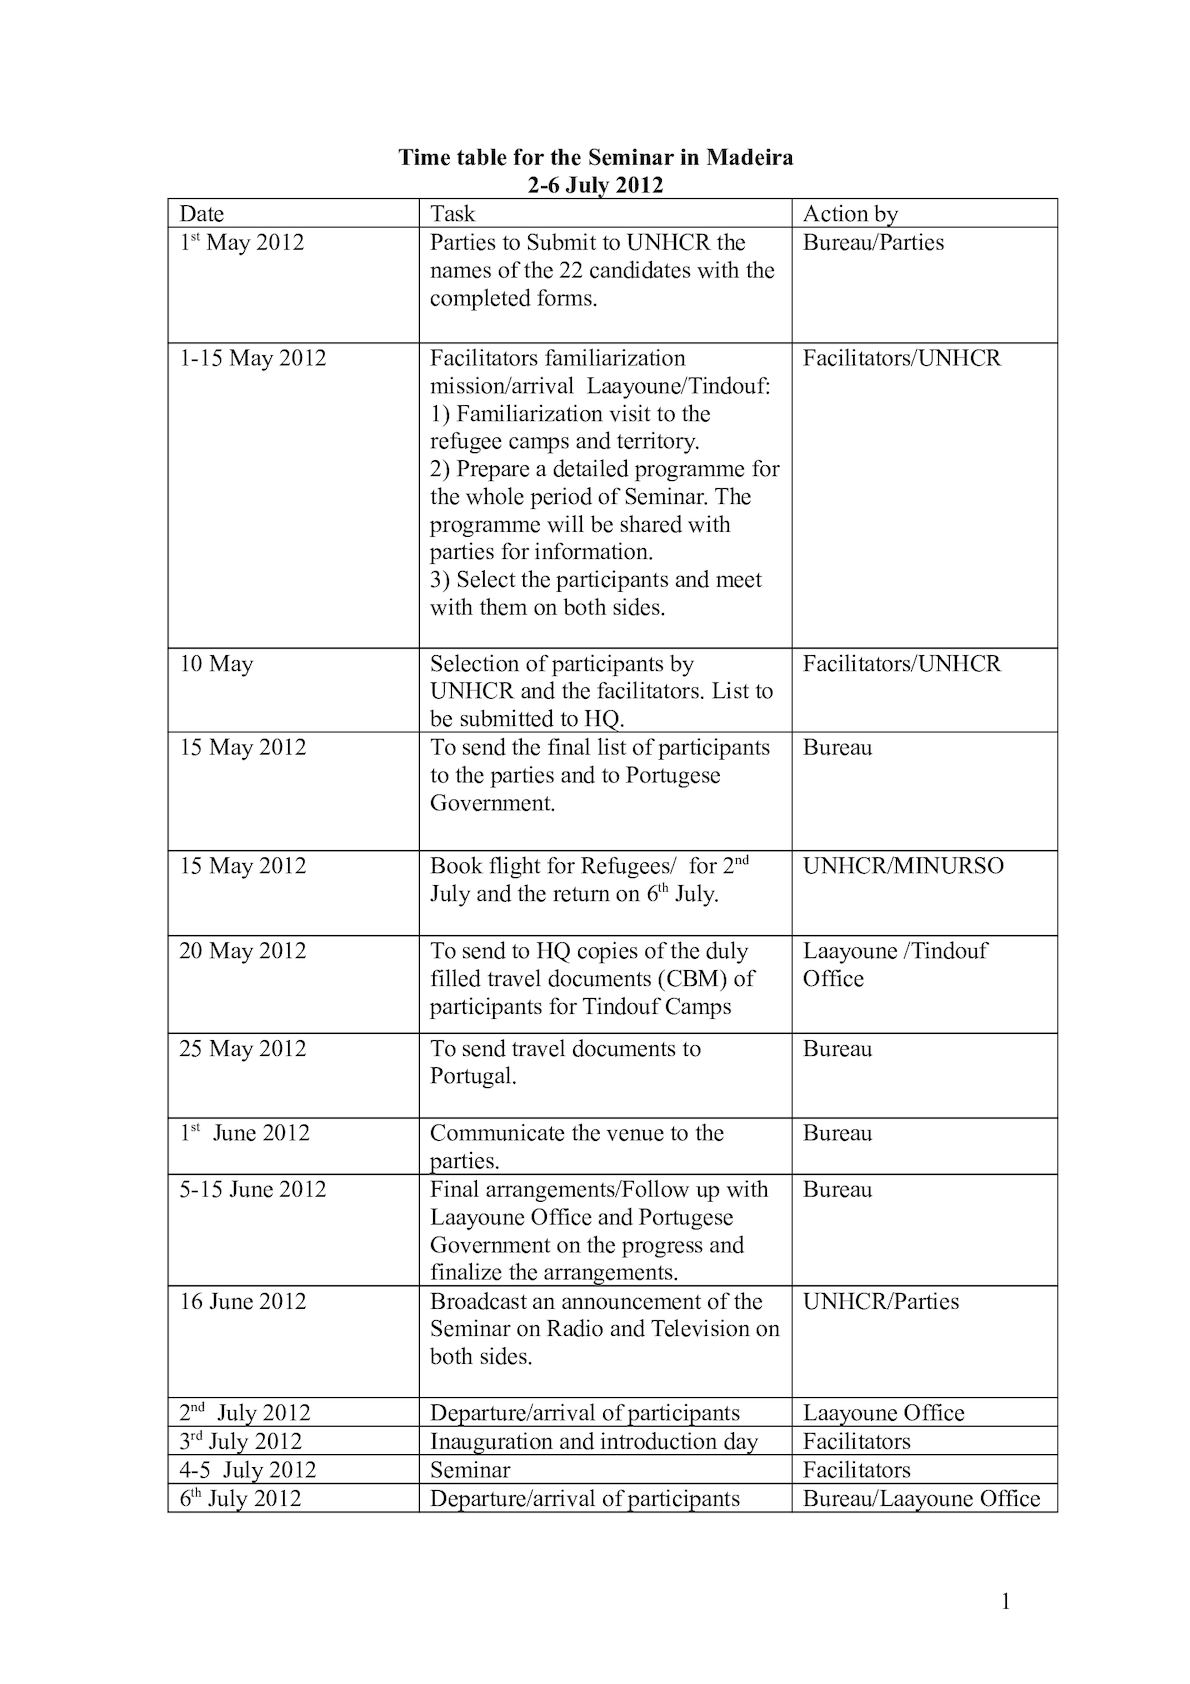 Time Table For The Seminar In Madeira Parties